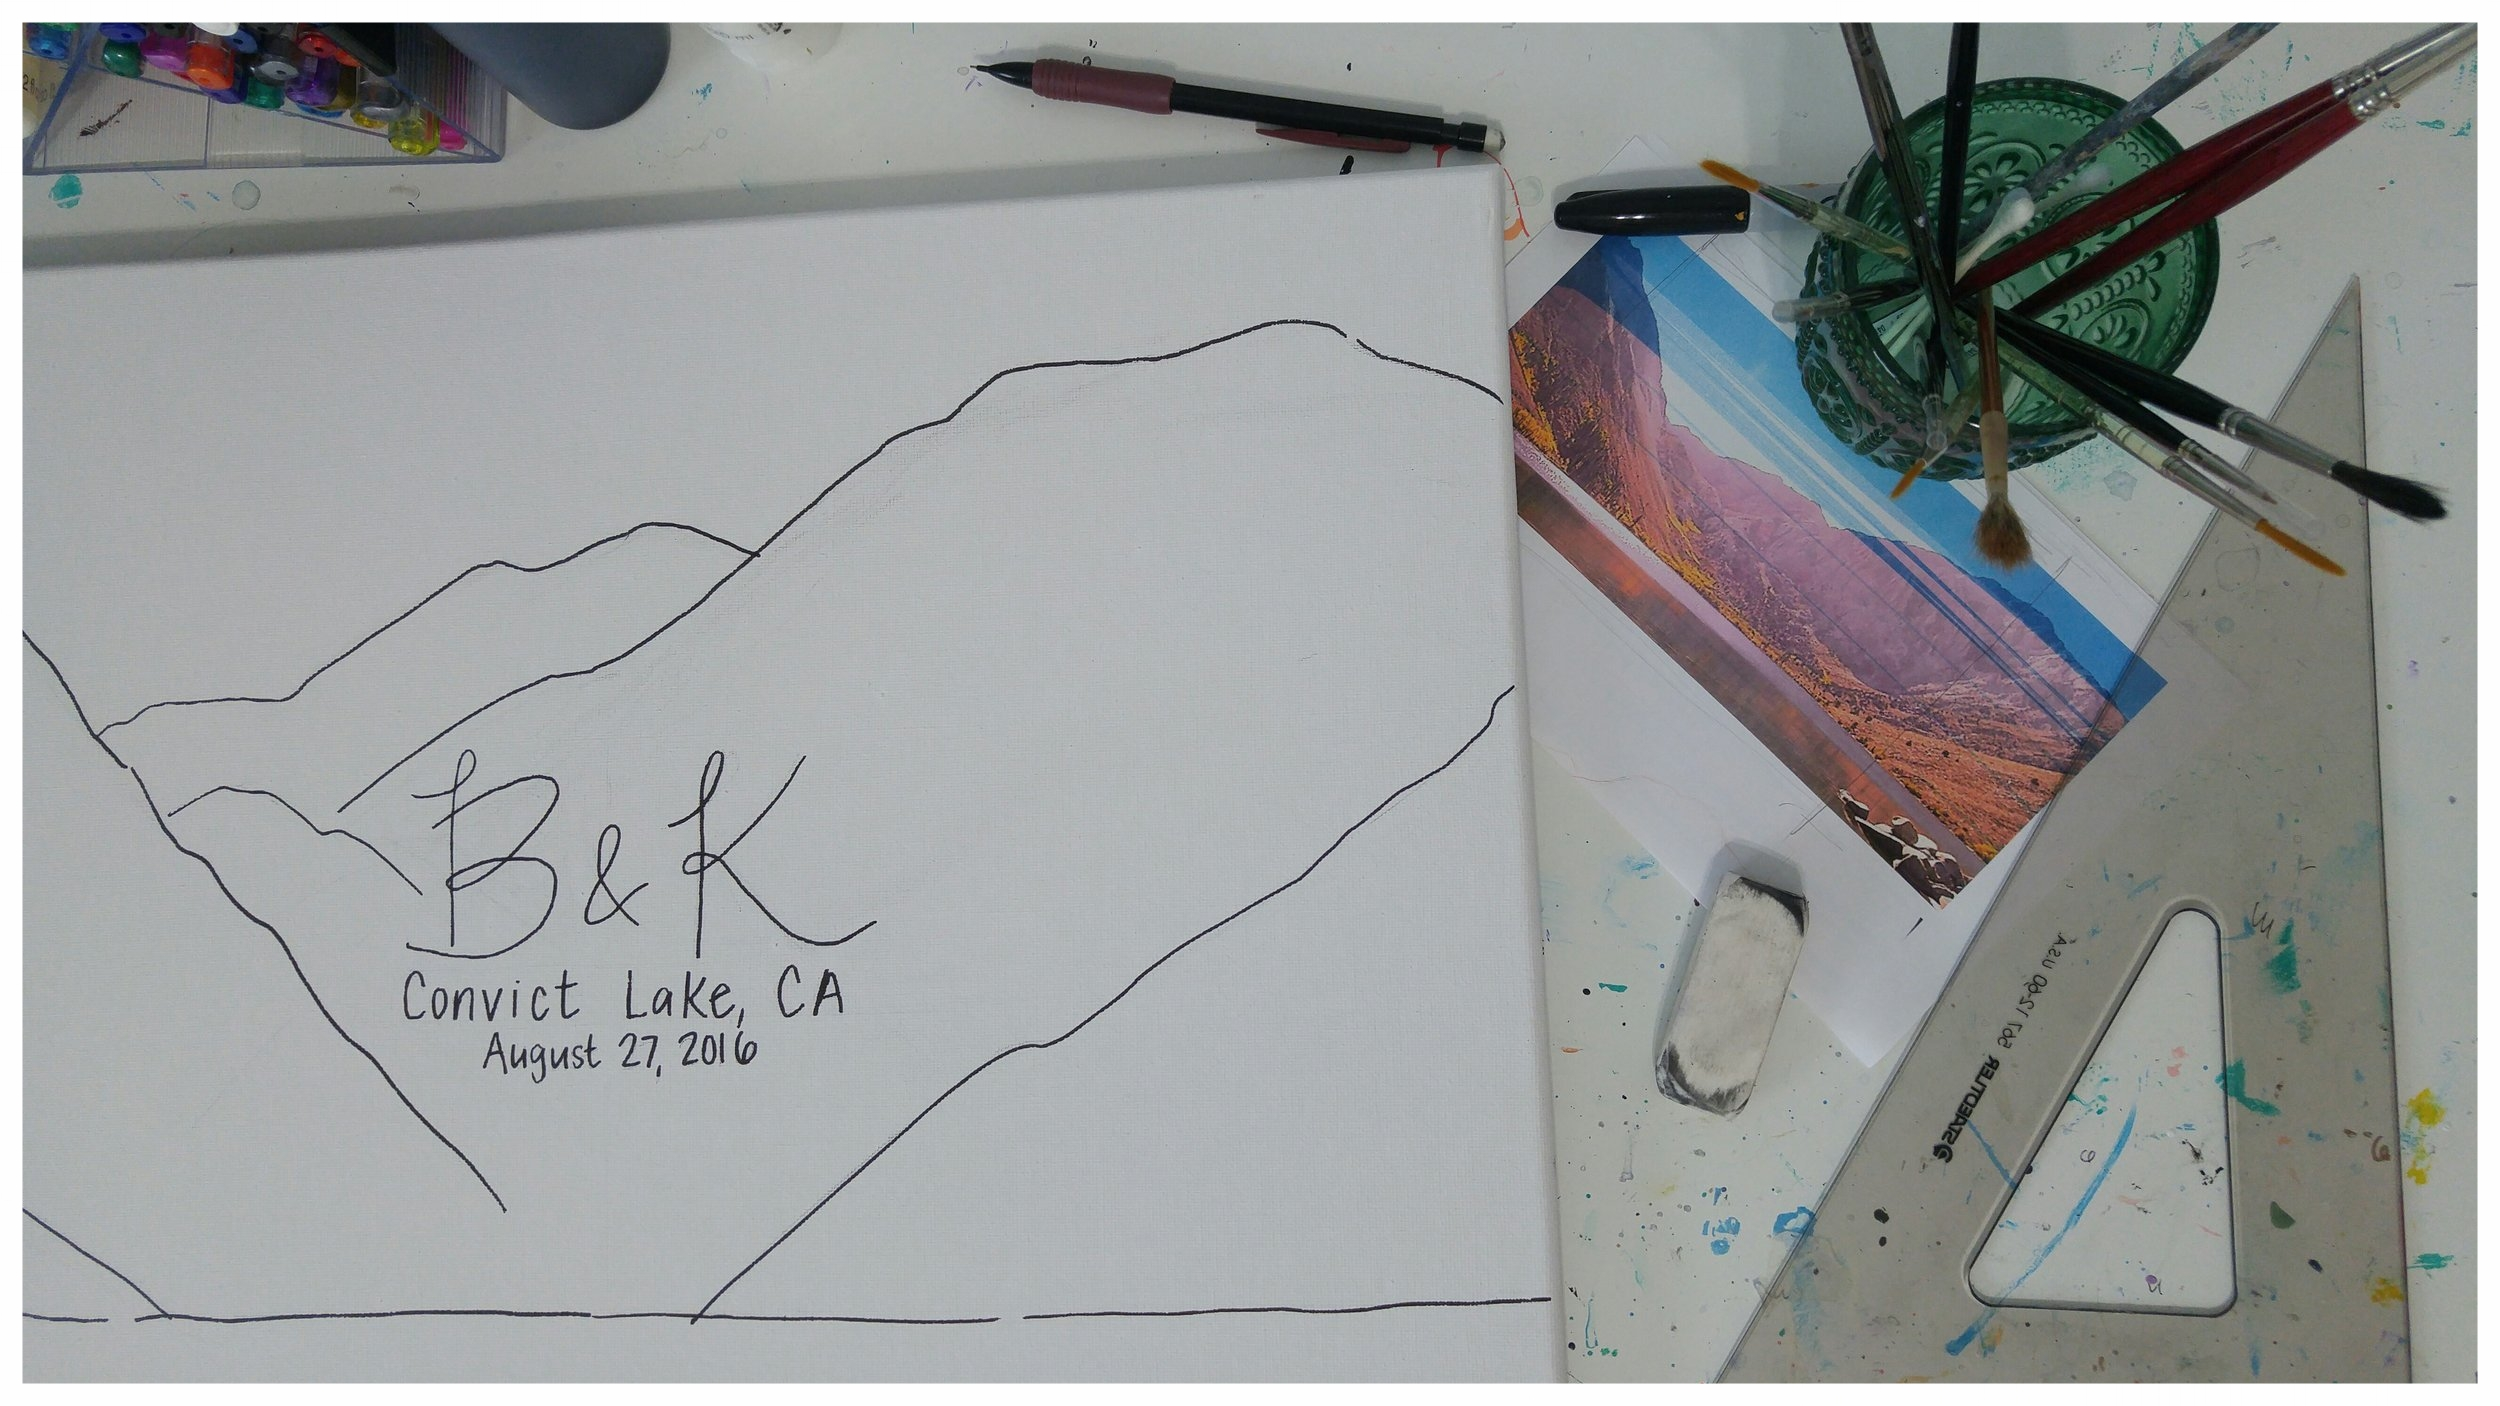 Drawing out the mountain shapes based on a photo of Convict Lake.